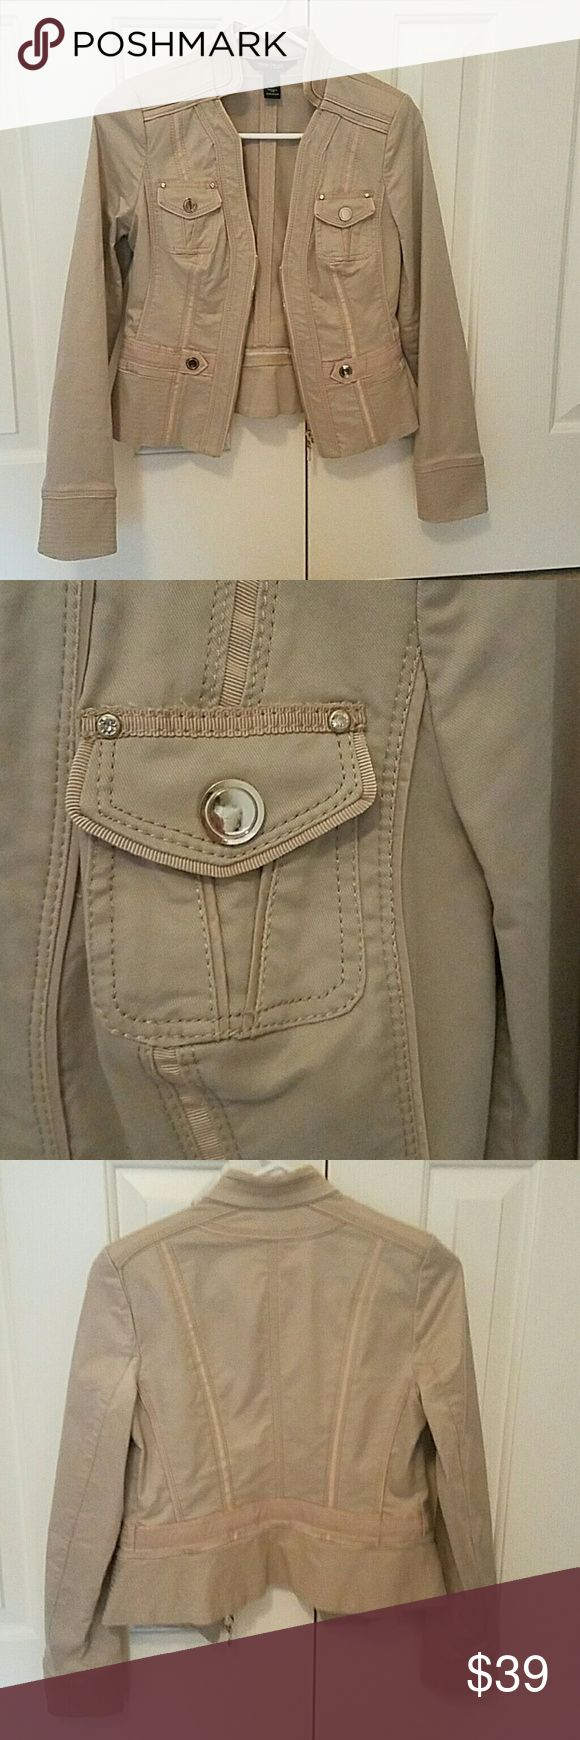 Sexy WHBM tan jacket with gorgeous silver embellis Sleek WHBM dressy/casual jacket great for work or dressing up jeans.  Great condition!  Why pay WHBM high prices when you get for a steal! White House Black Market Jackets & Coats Blazers